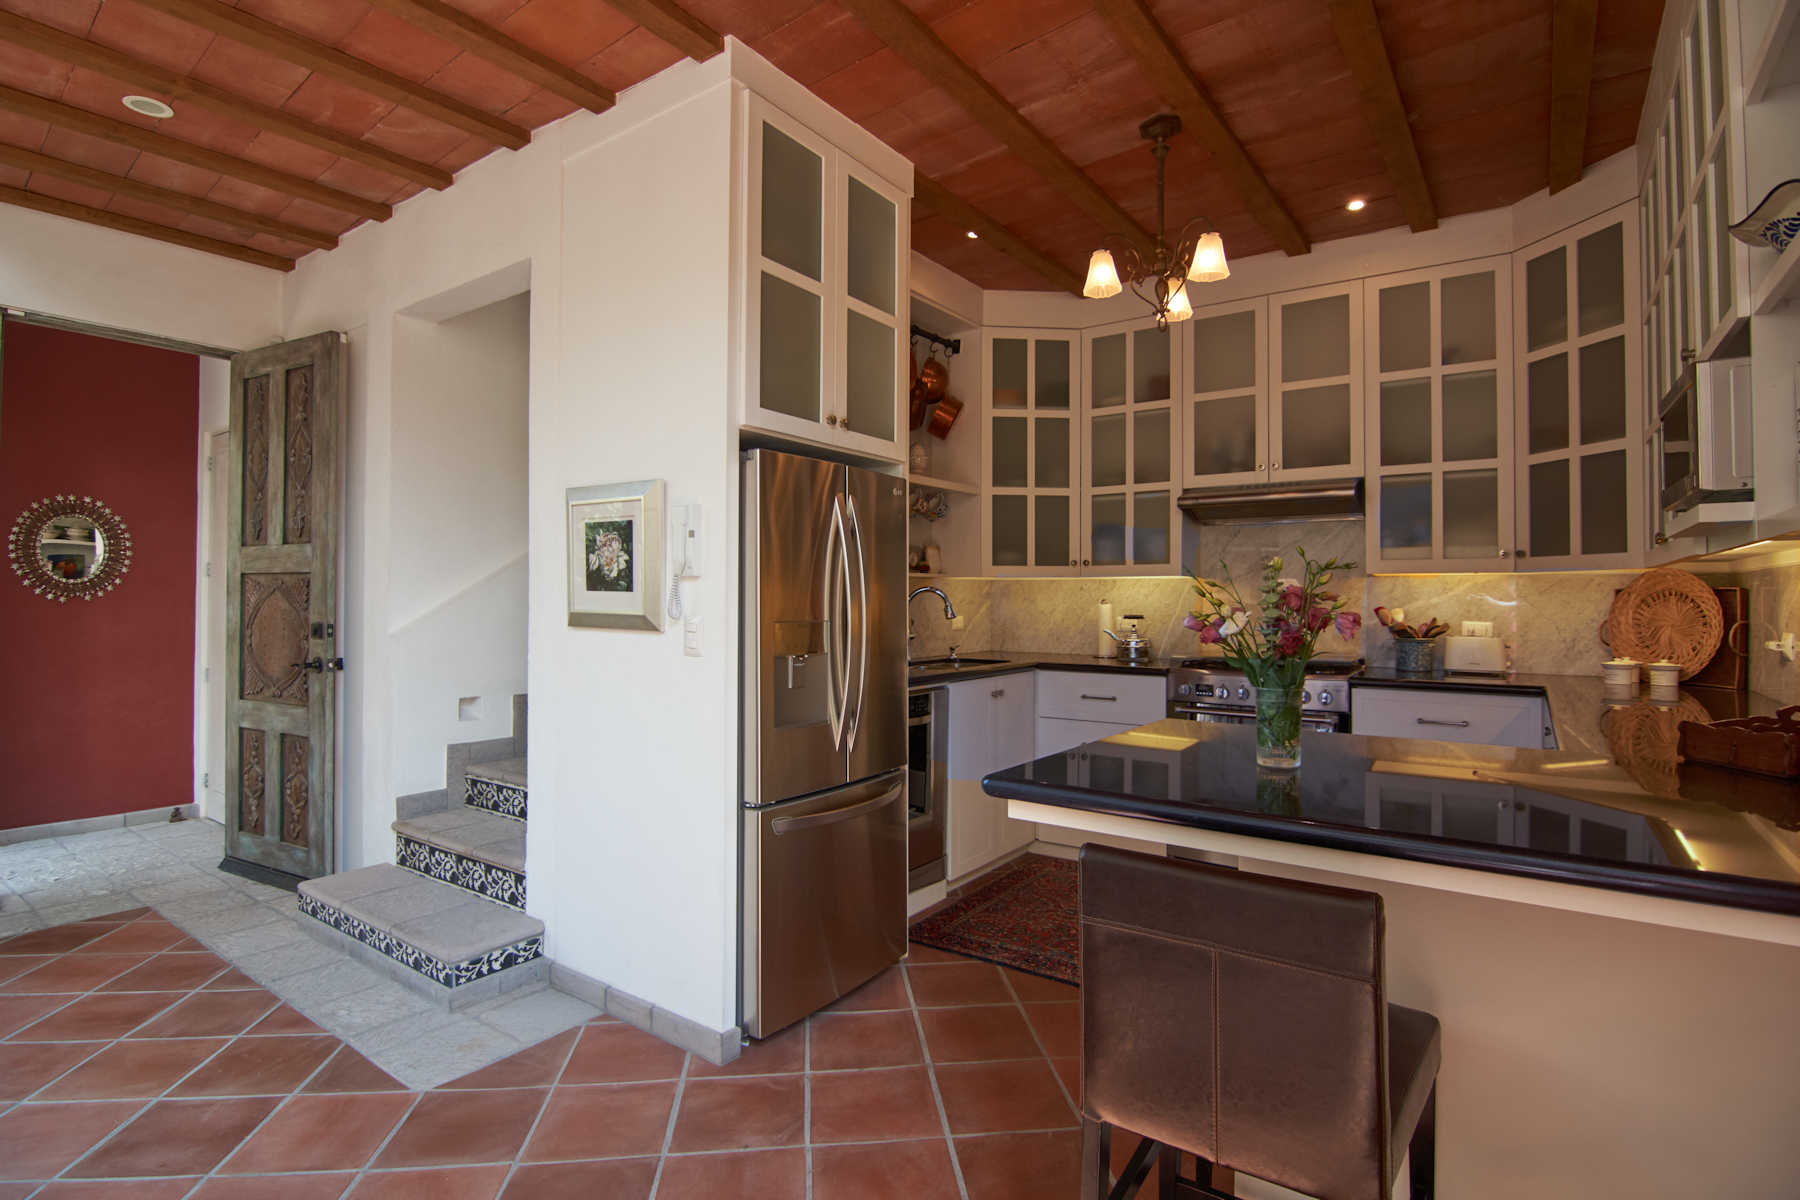 Single Family Home for Sale at Casa Lilly Ojo De Agua, San Miguel De Allende, Guanajuato Mexico